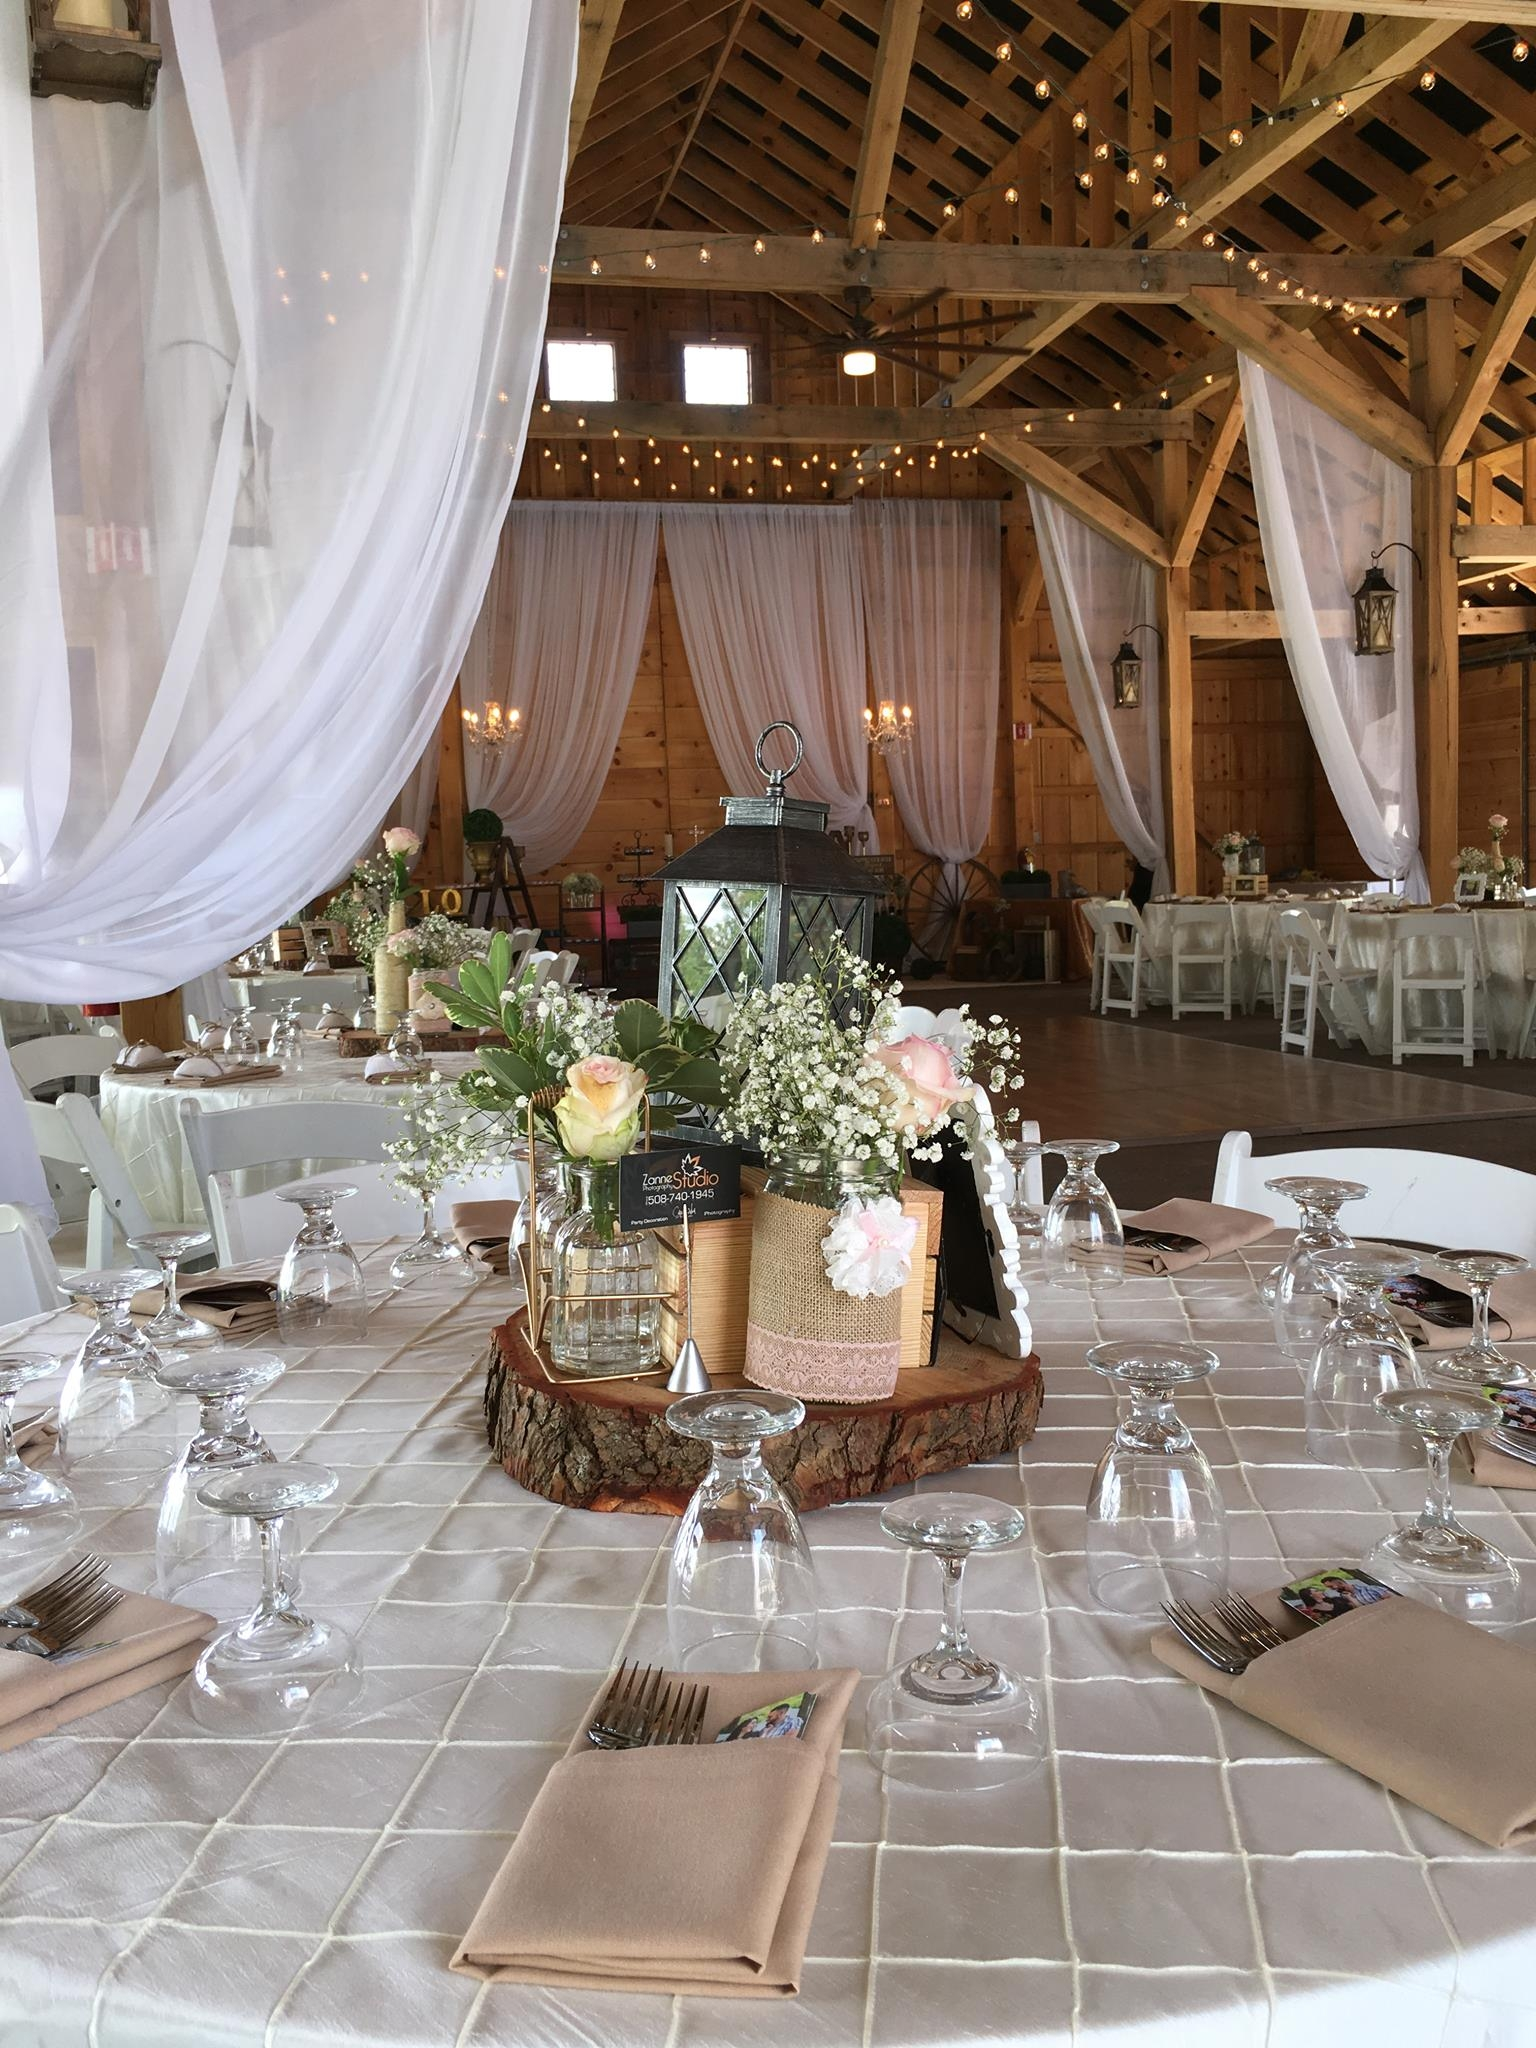 blissful meadows golf club weddings uxbridge massachusetts worcester golf and barn weddings